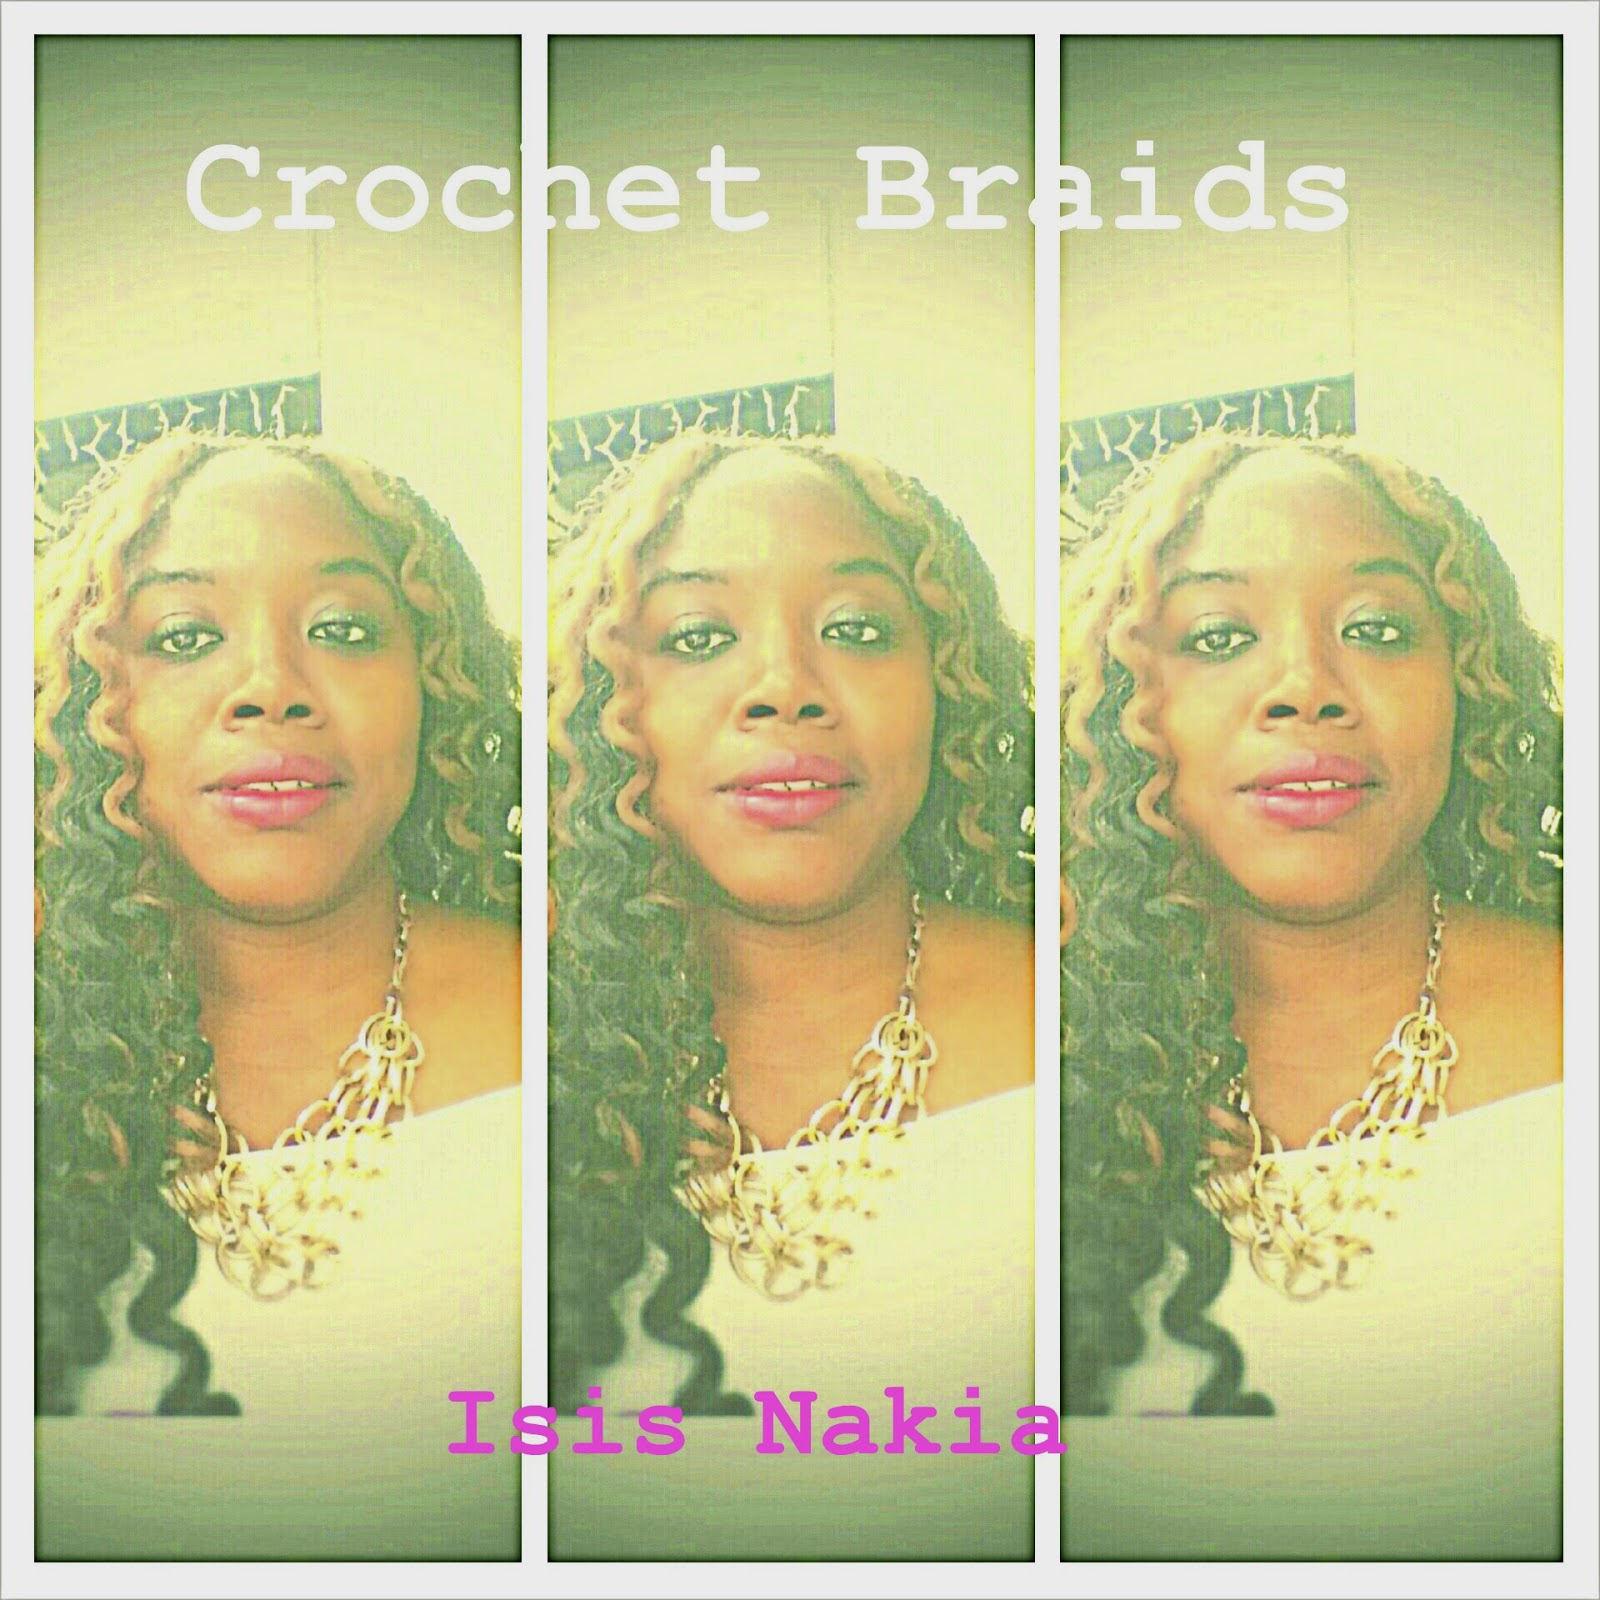 Isis Nakia Baltimore Natural Hair Stylist: Crochet Braids in Baltimore ...